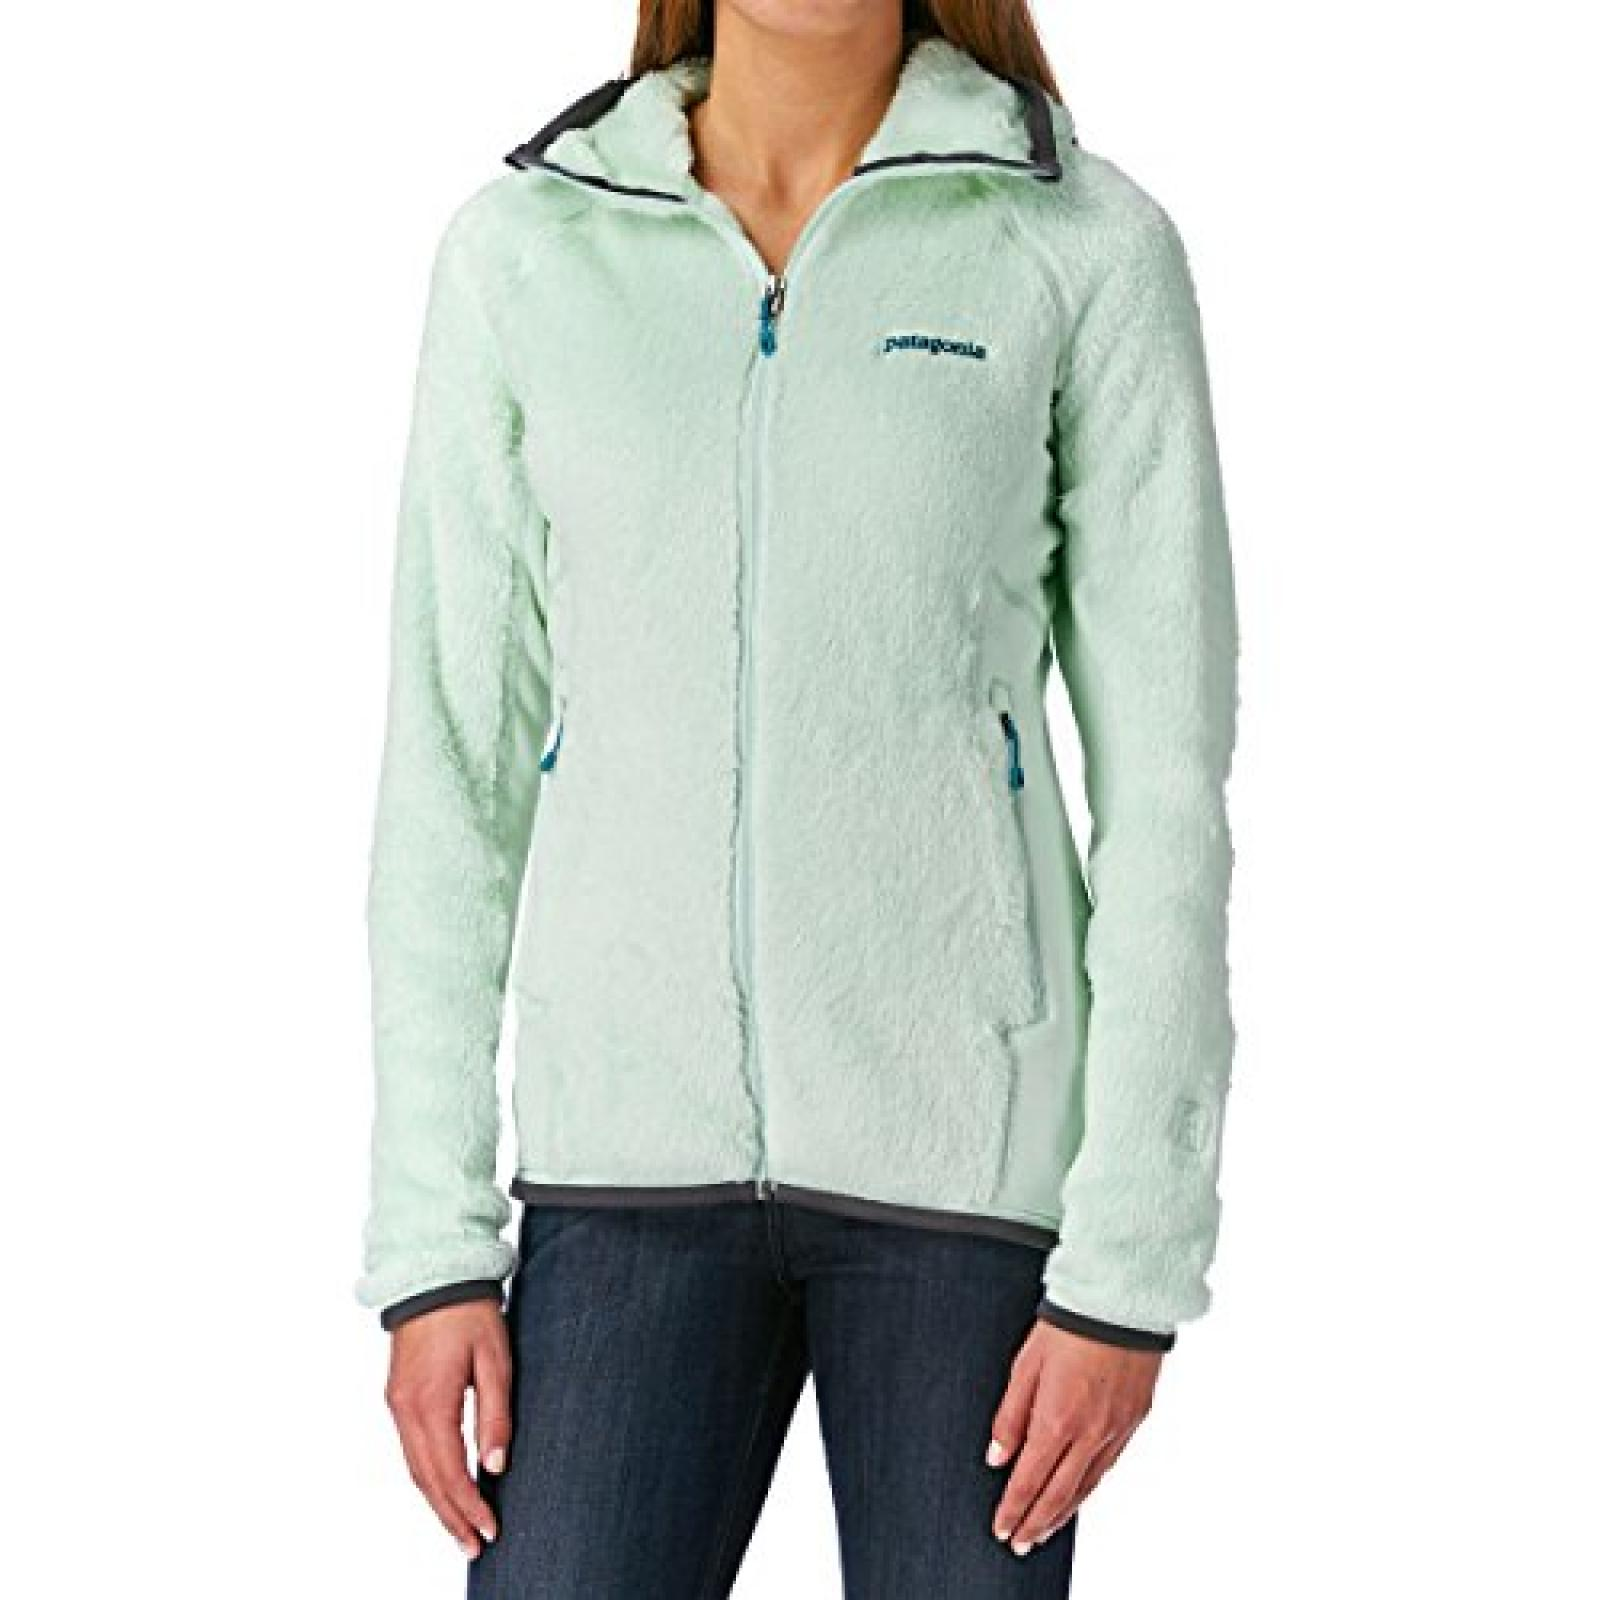 Patagonia R3 Hooded Fleece - Arctic Mint